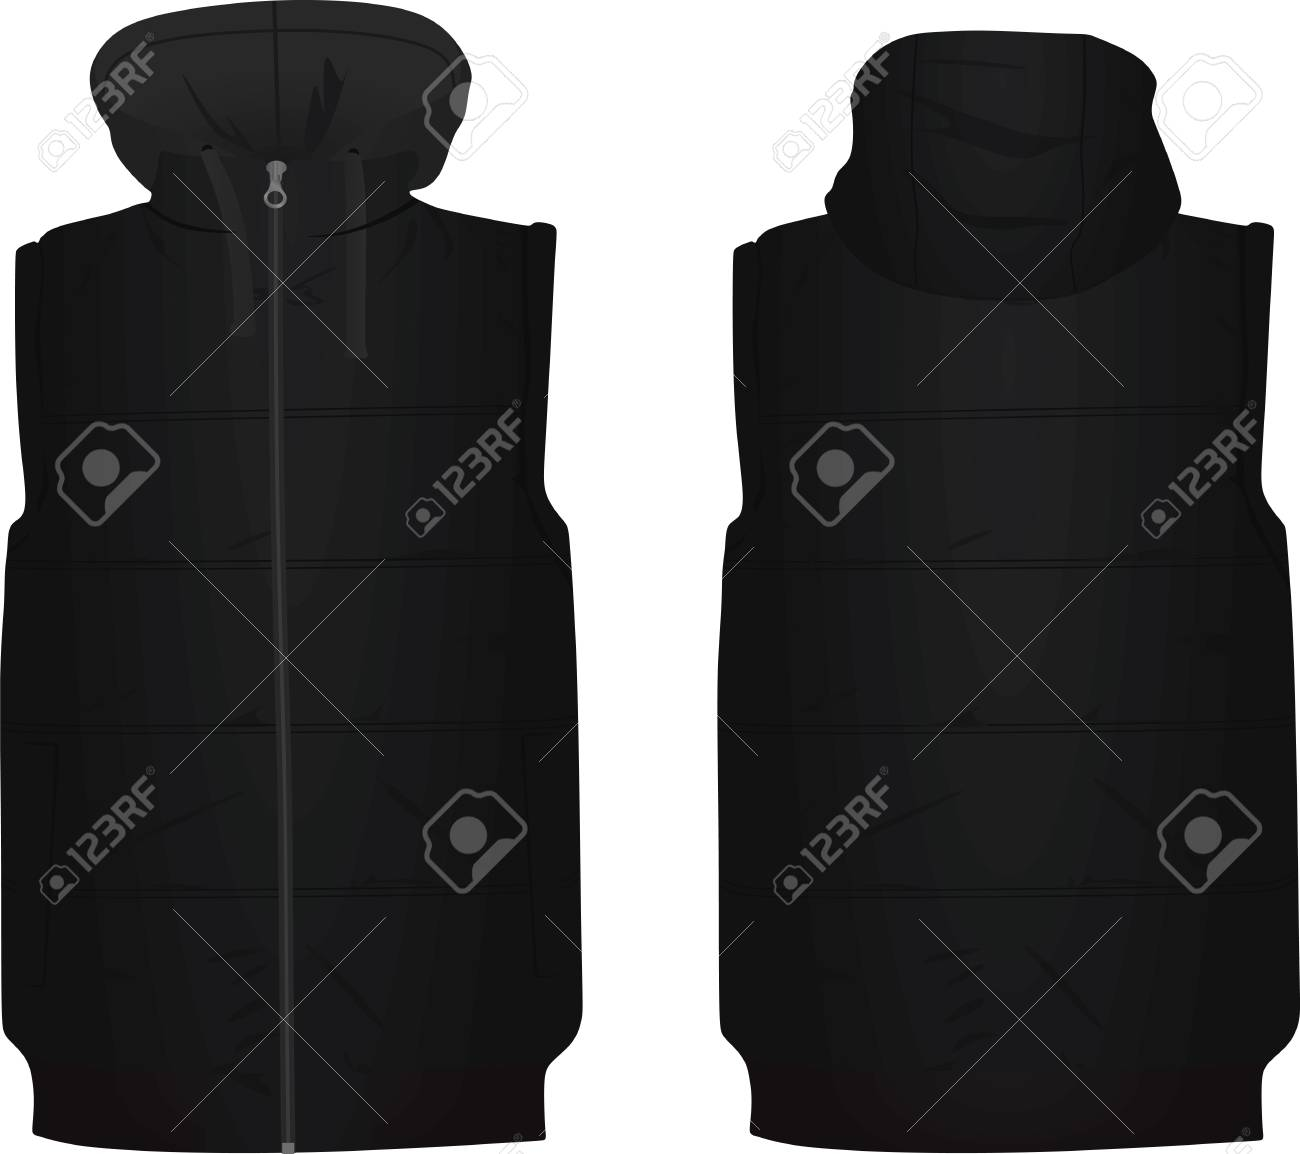 Black puffer with cap illustration on white background. - 92675247